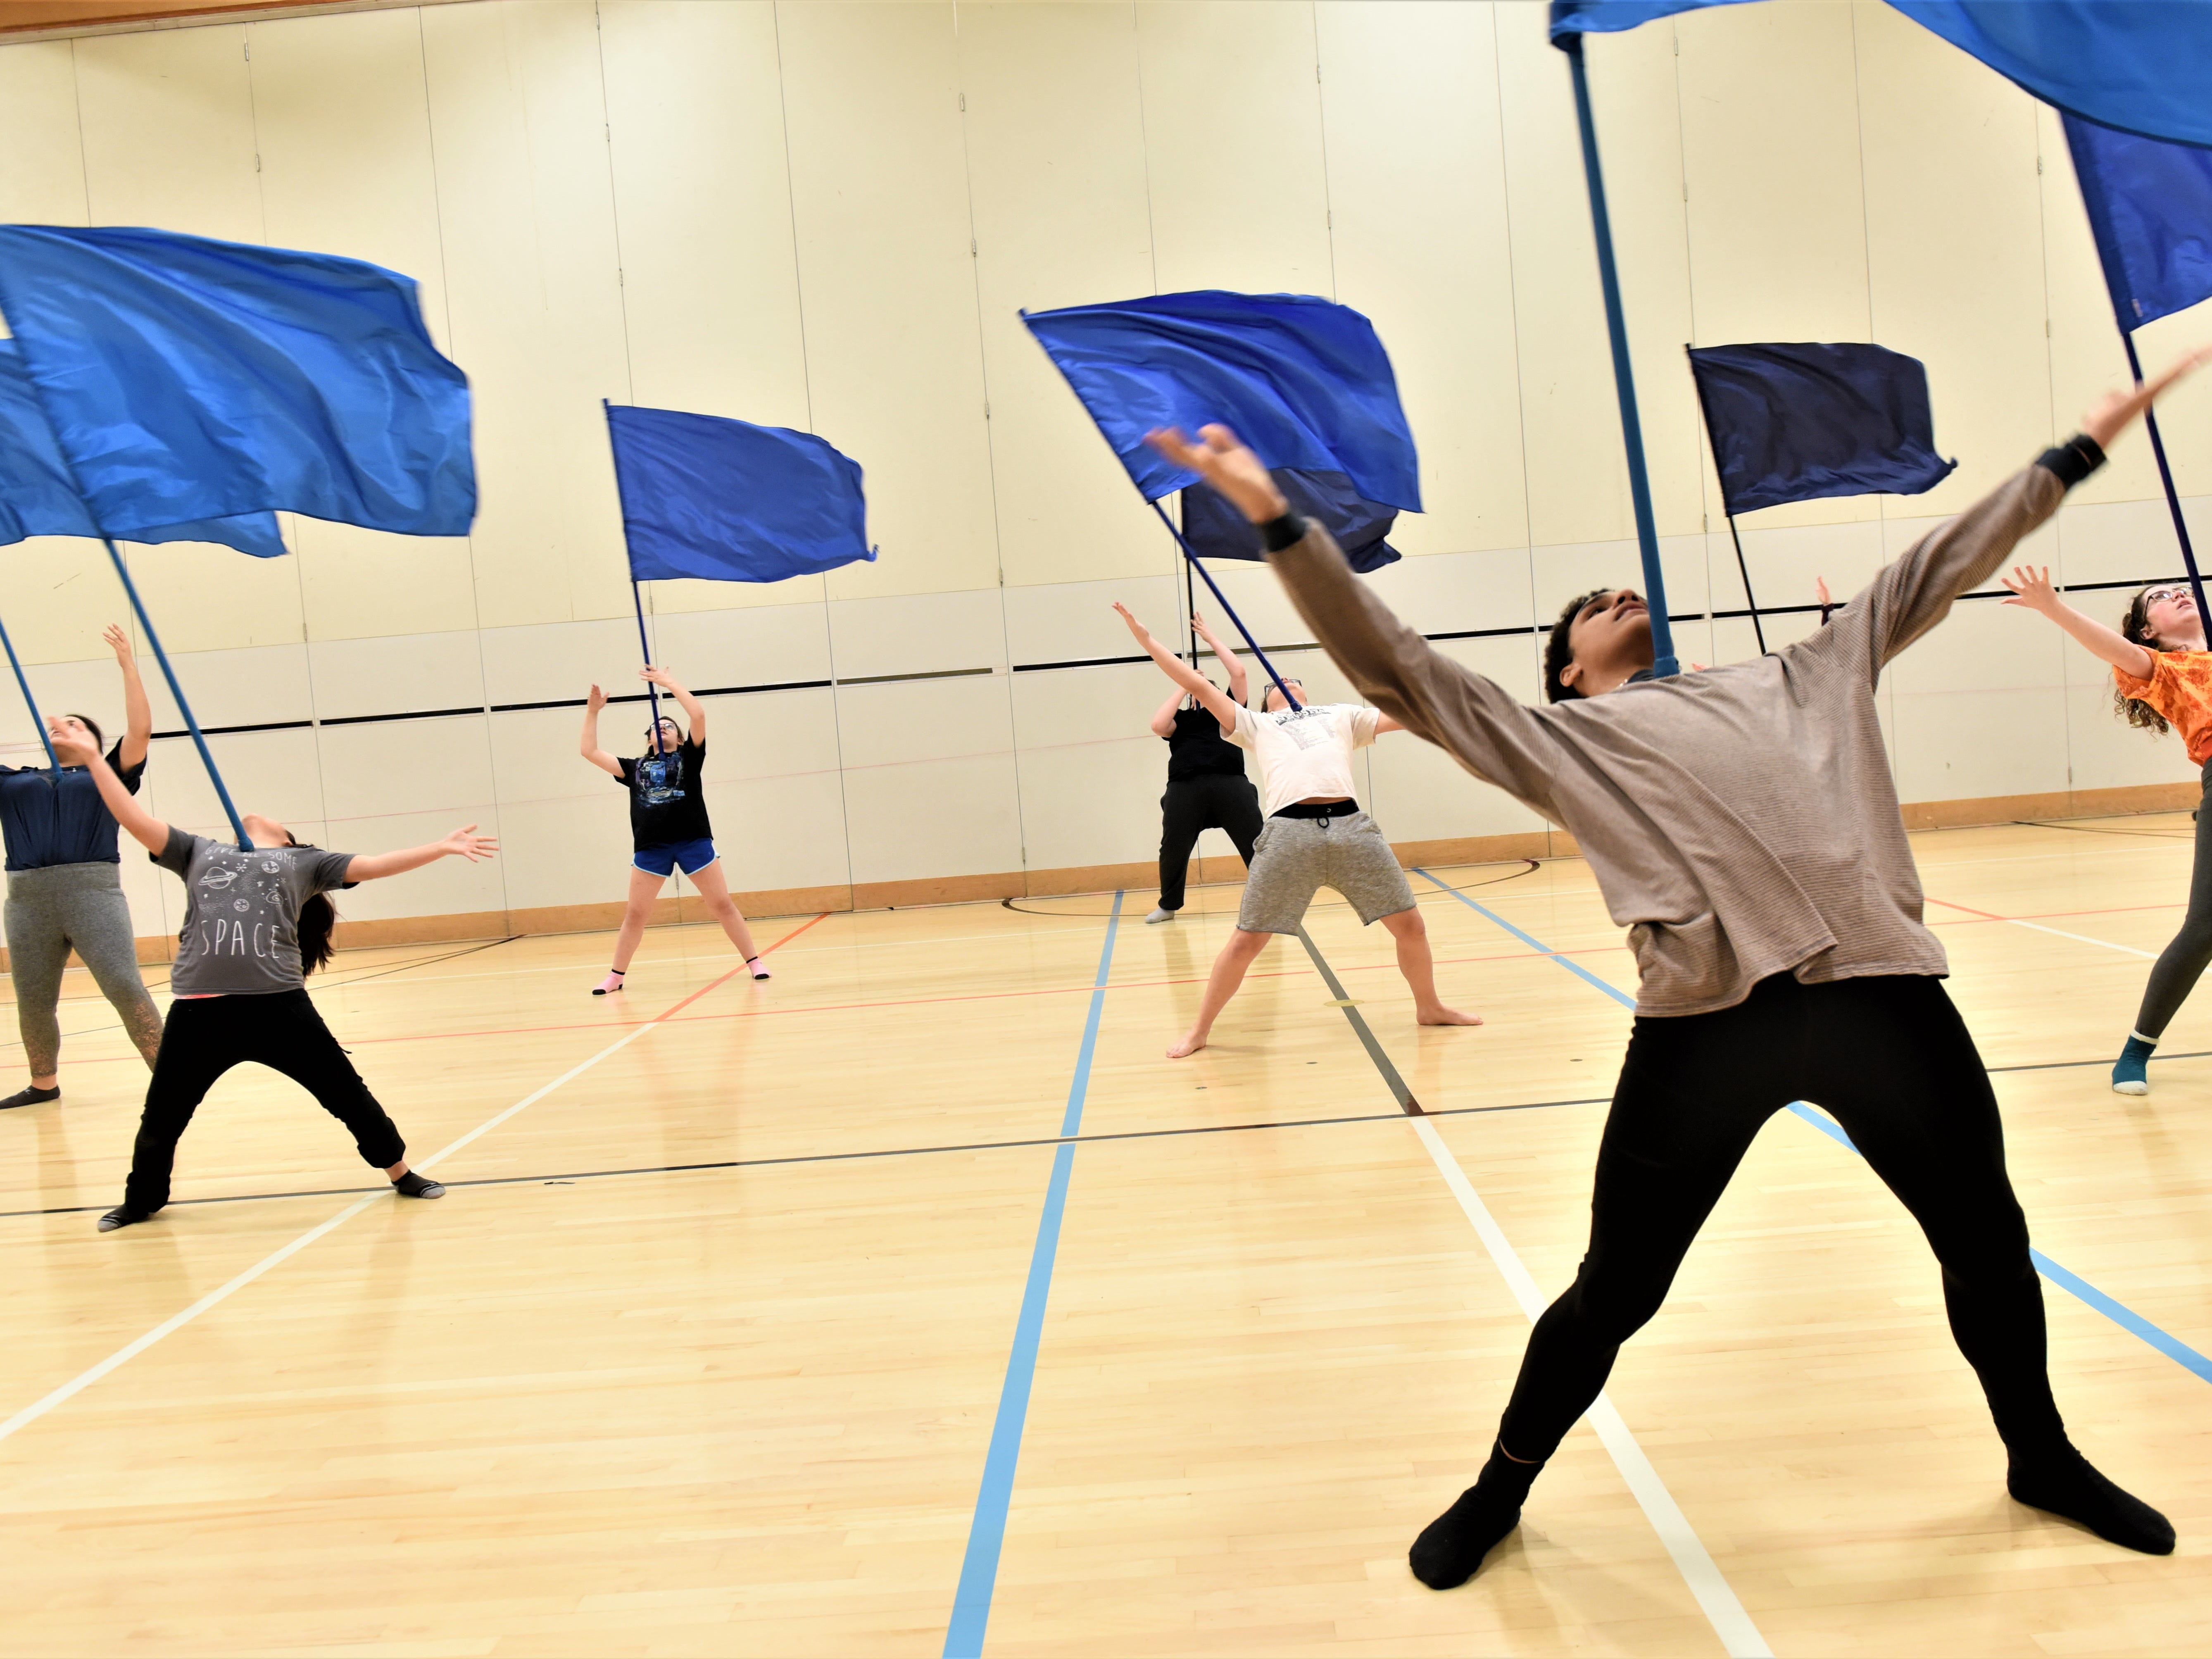 Hanover Senior High School color guard team practices their routine on March 4, 2019.